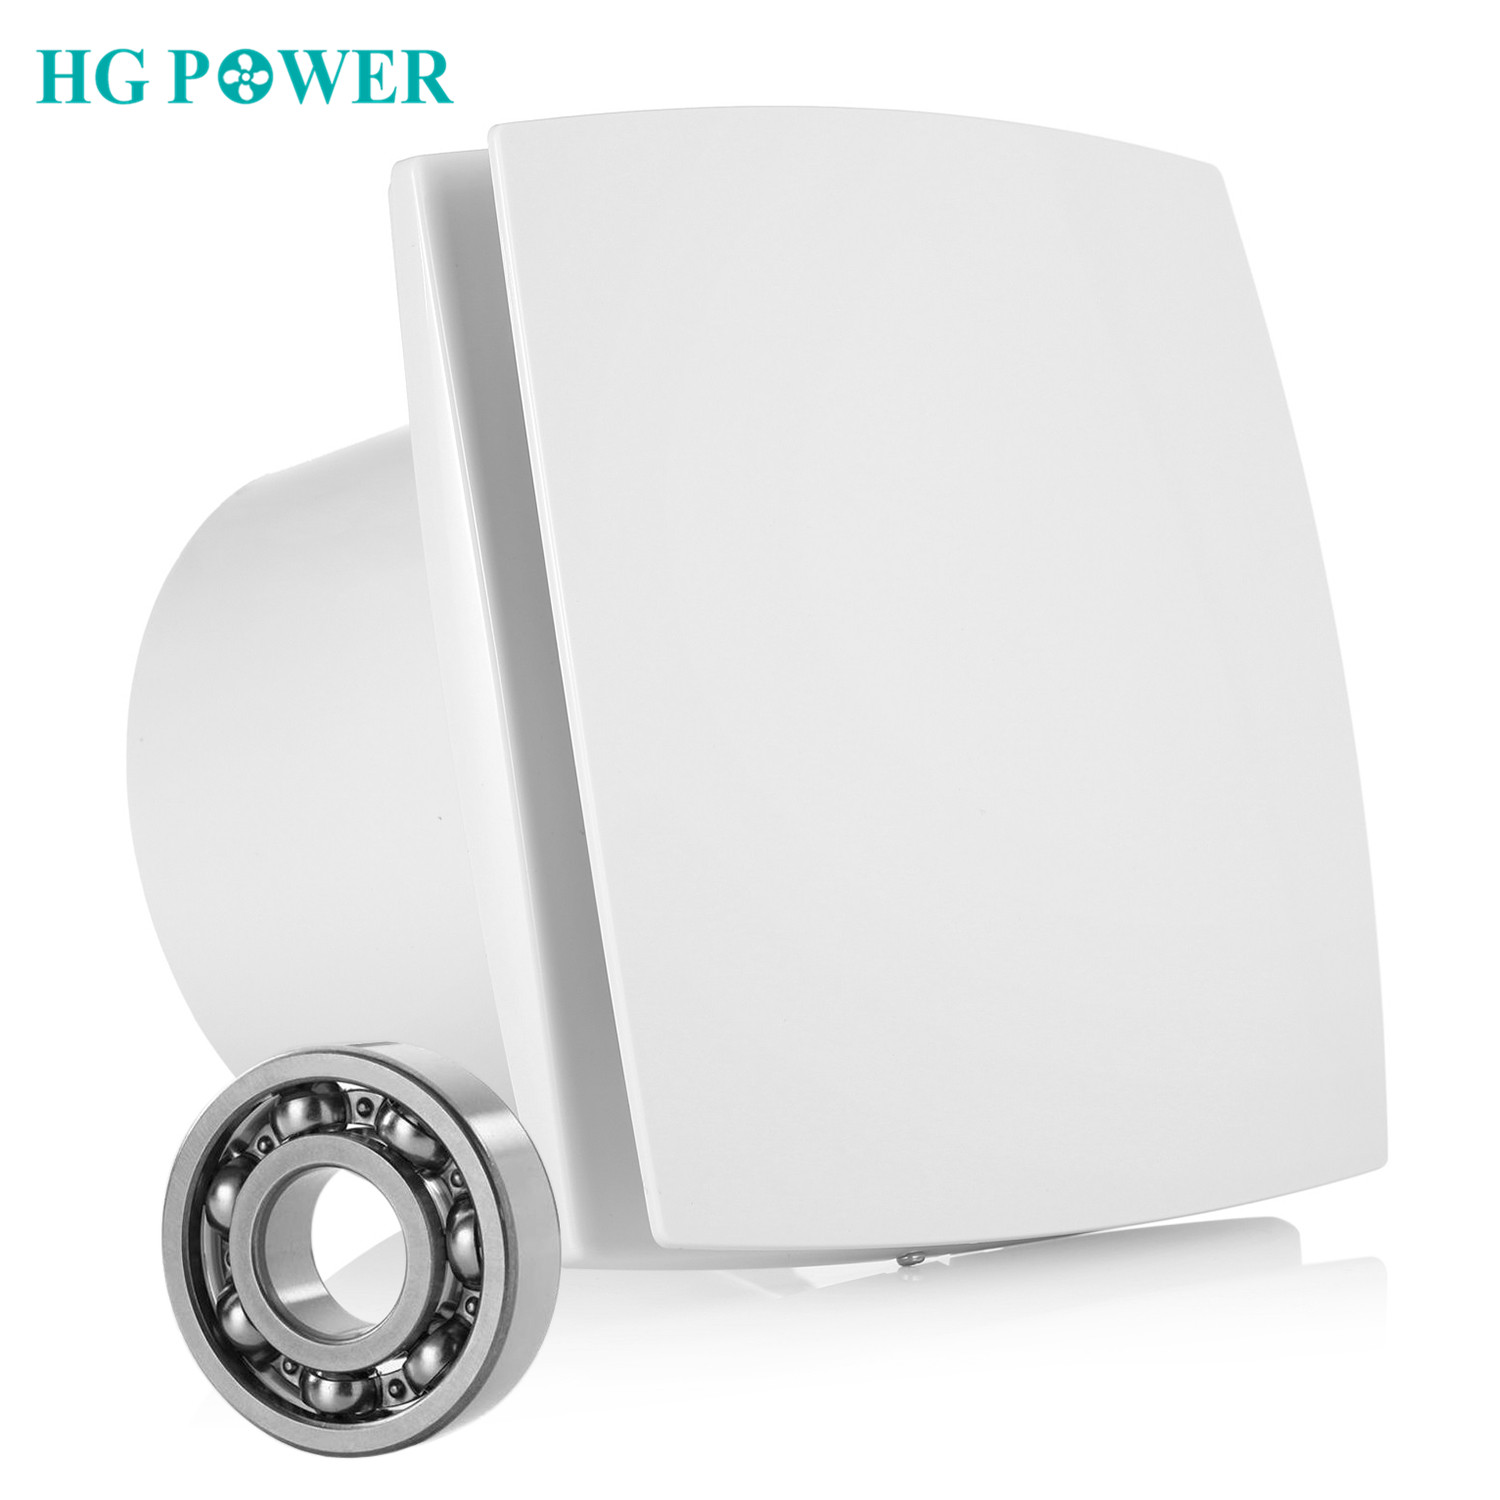 6inch Silent Toilet Exhaust Fan Home Bathroom Kitchen Toilet Fan Extractor Air Ventilation Low Noise Ventilator Wall Mounted Fan